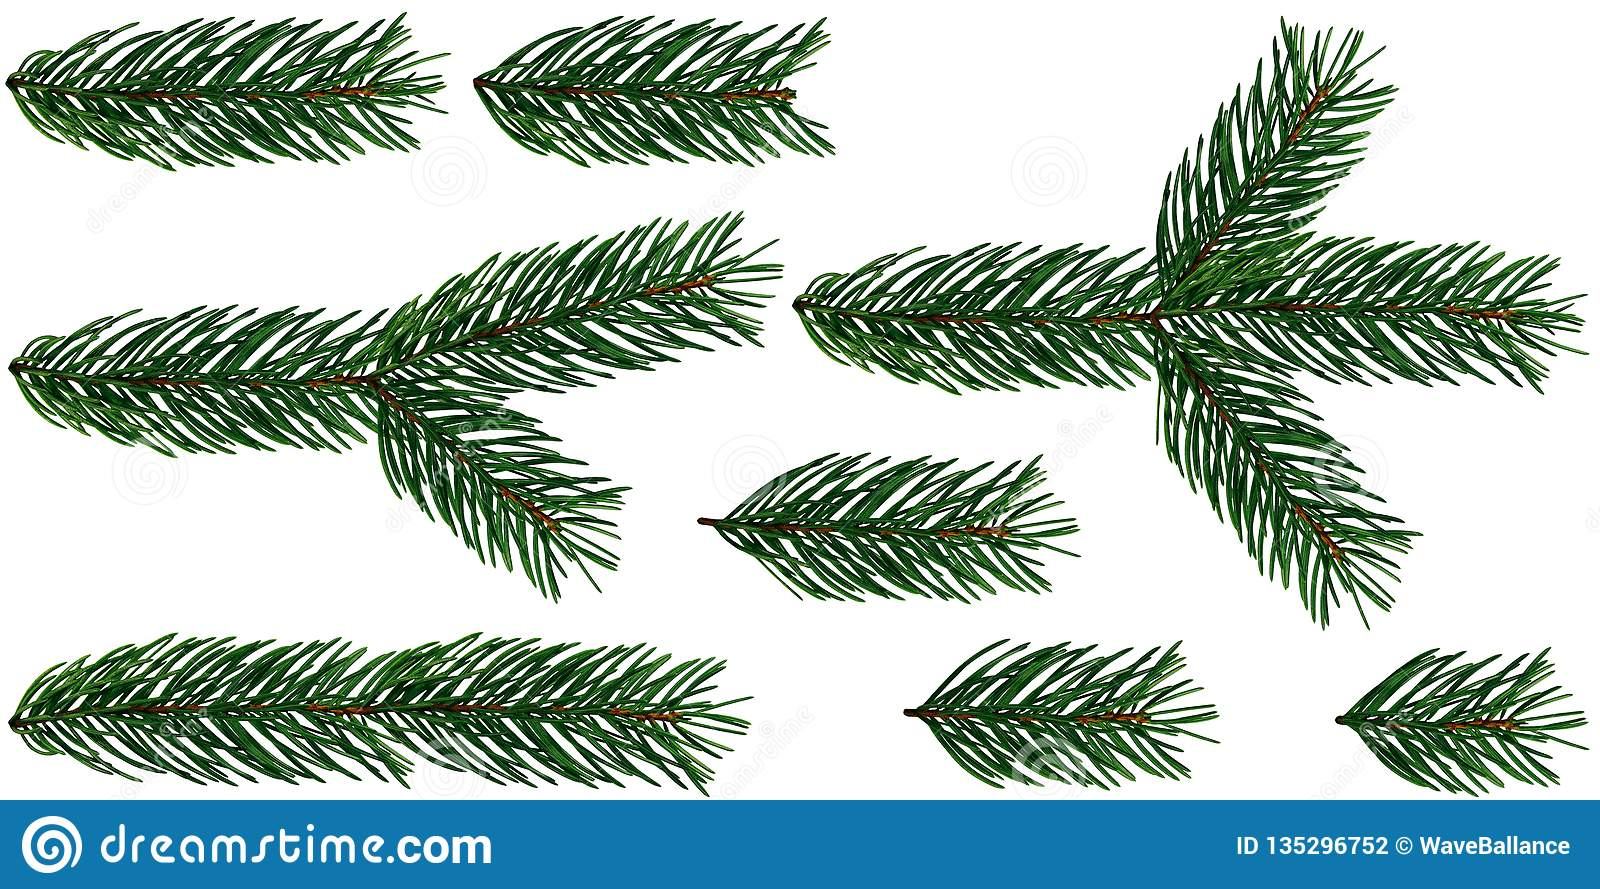 Christmas Branch Png.A Set Of 8 Elements Of Fir Tree Branches Christmas Tree Is